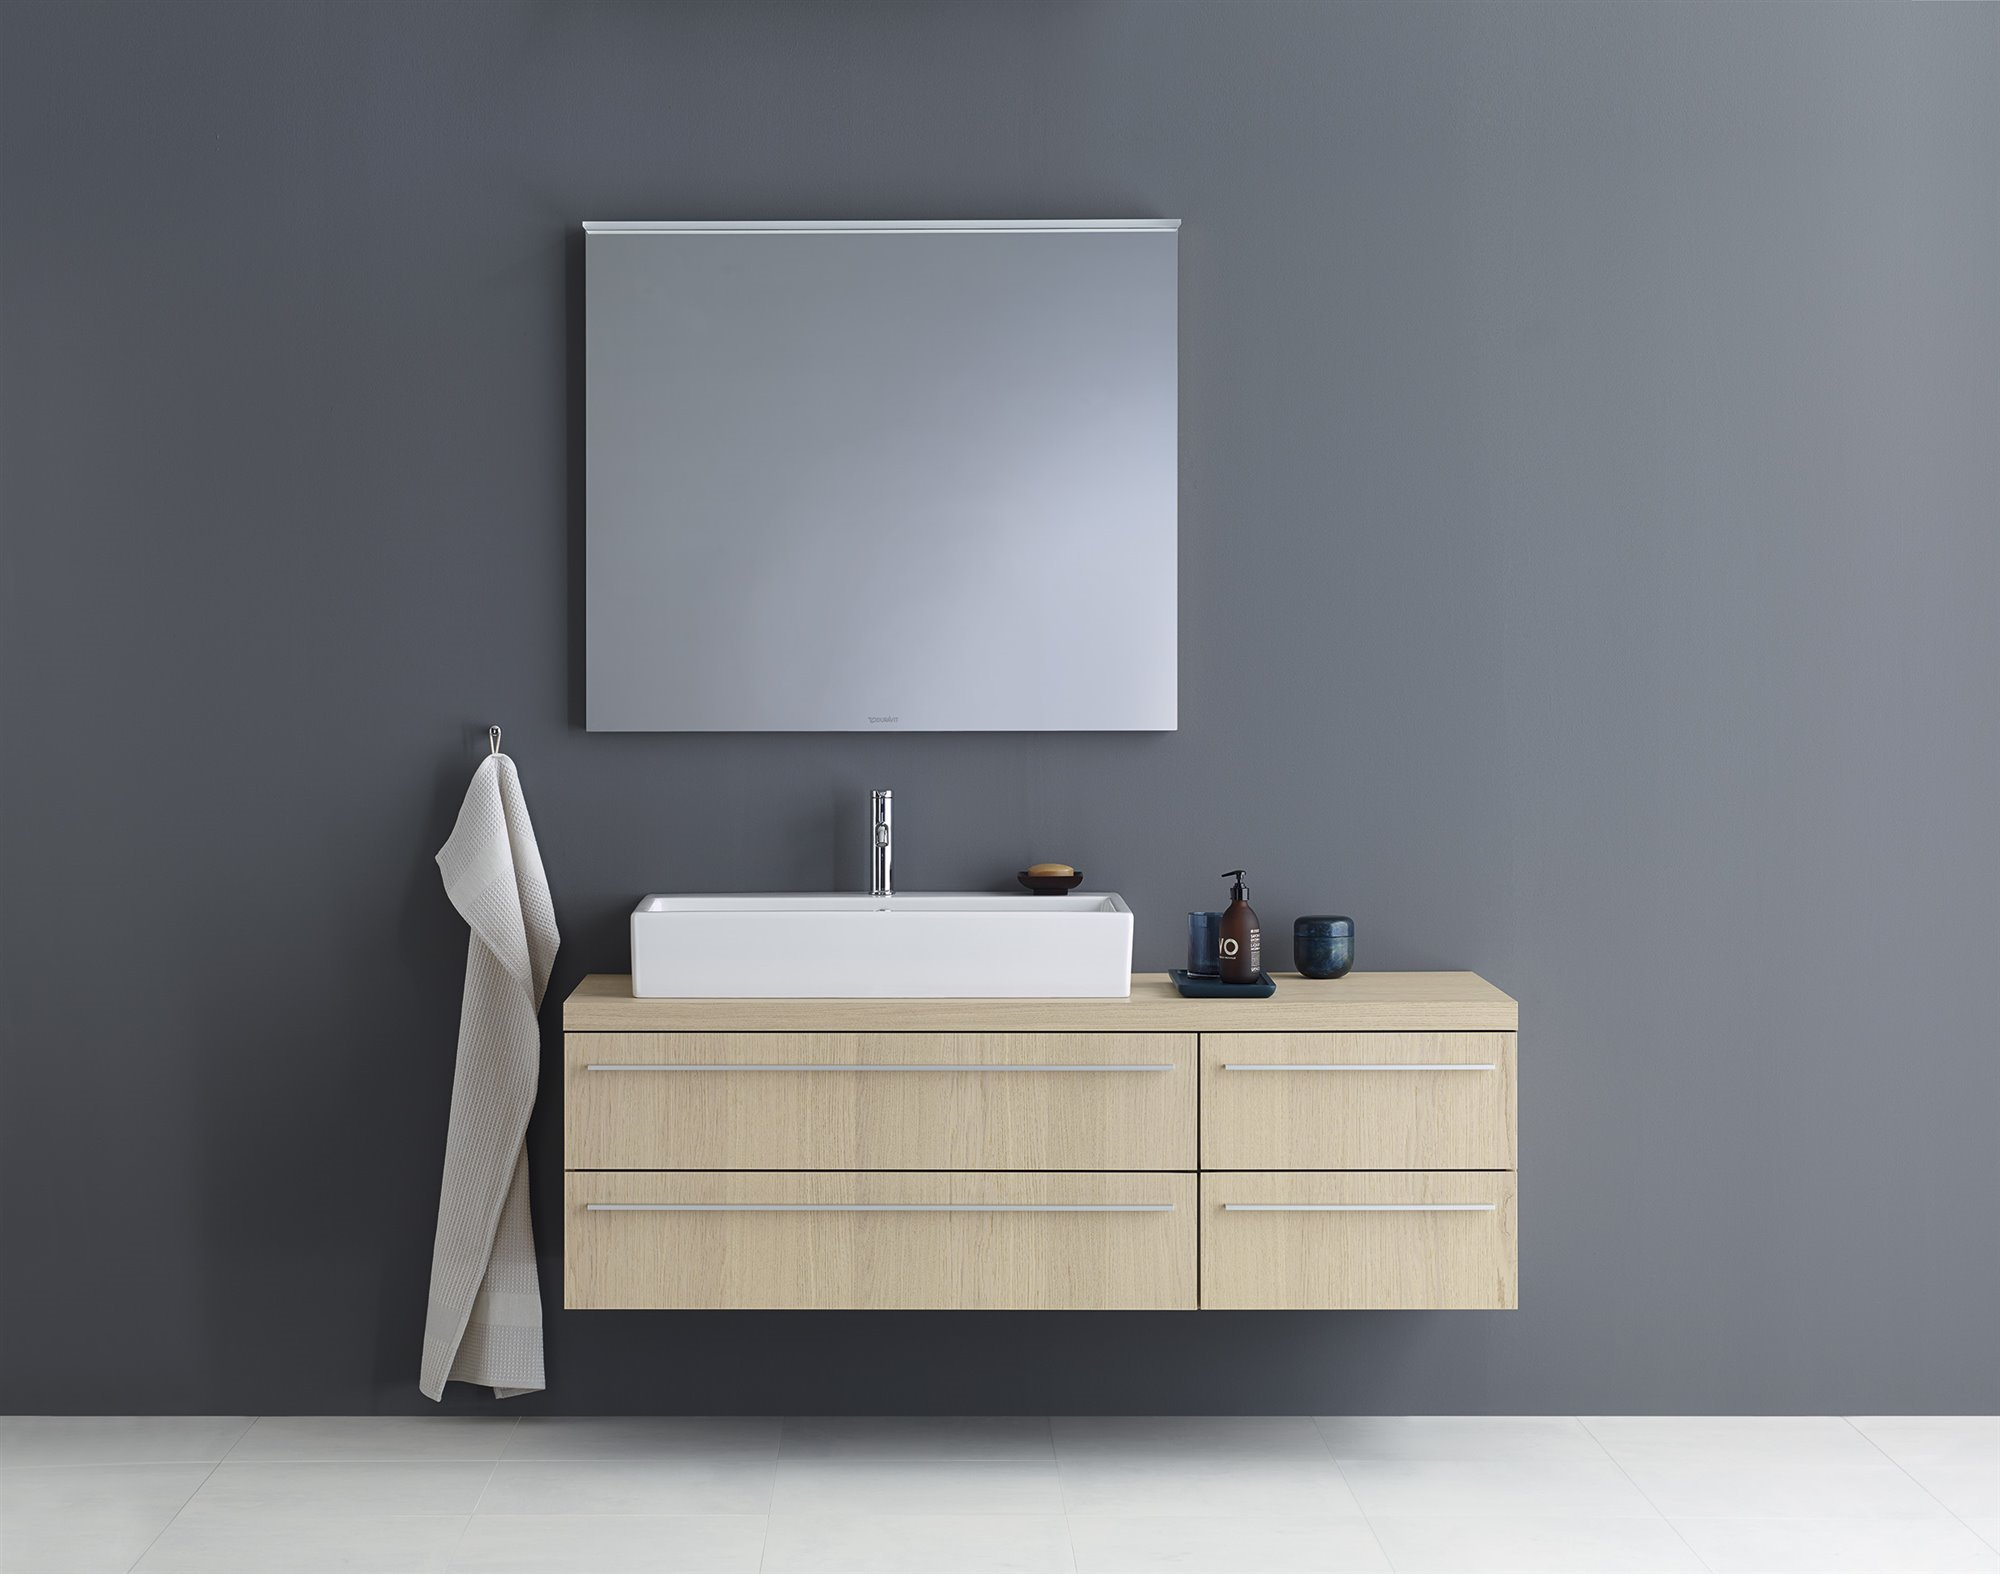 Duravit encimeras baño Unified console system X-Large